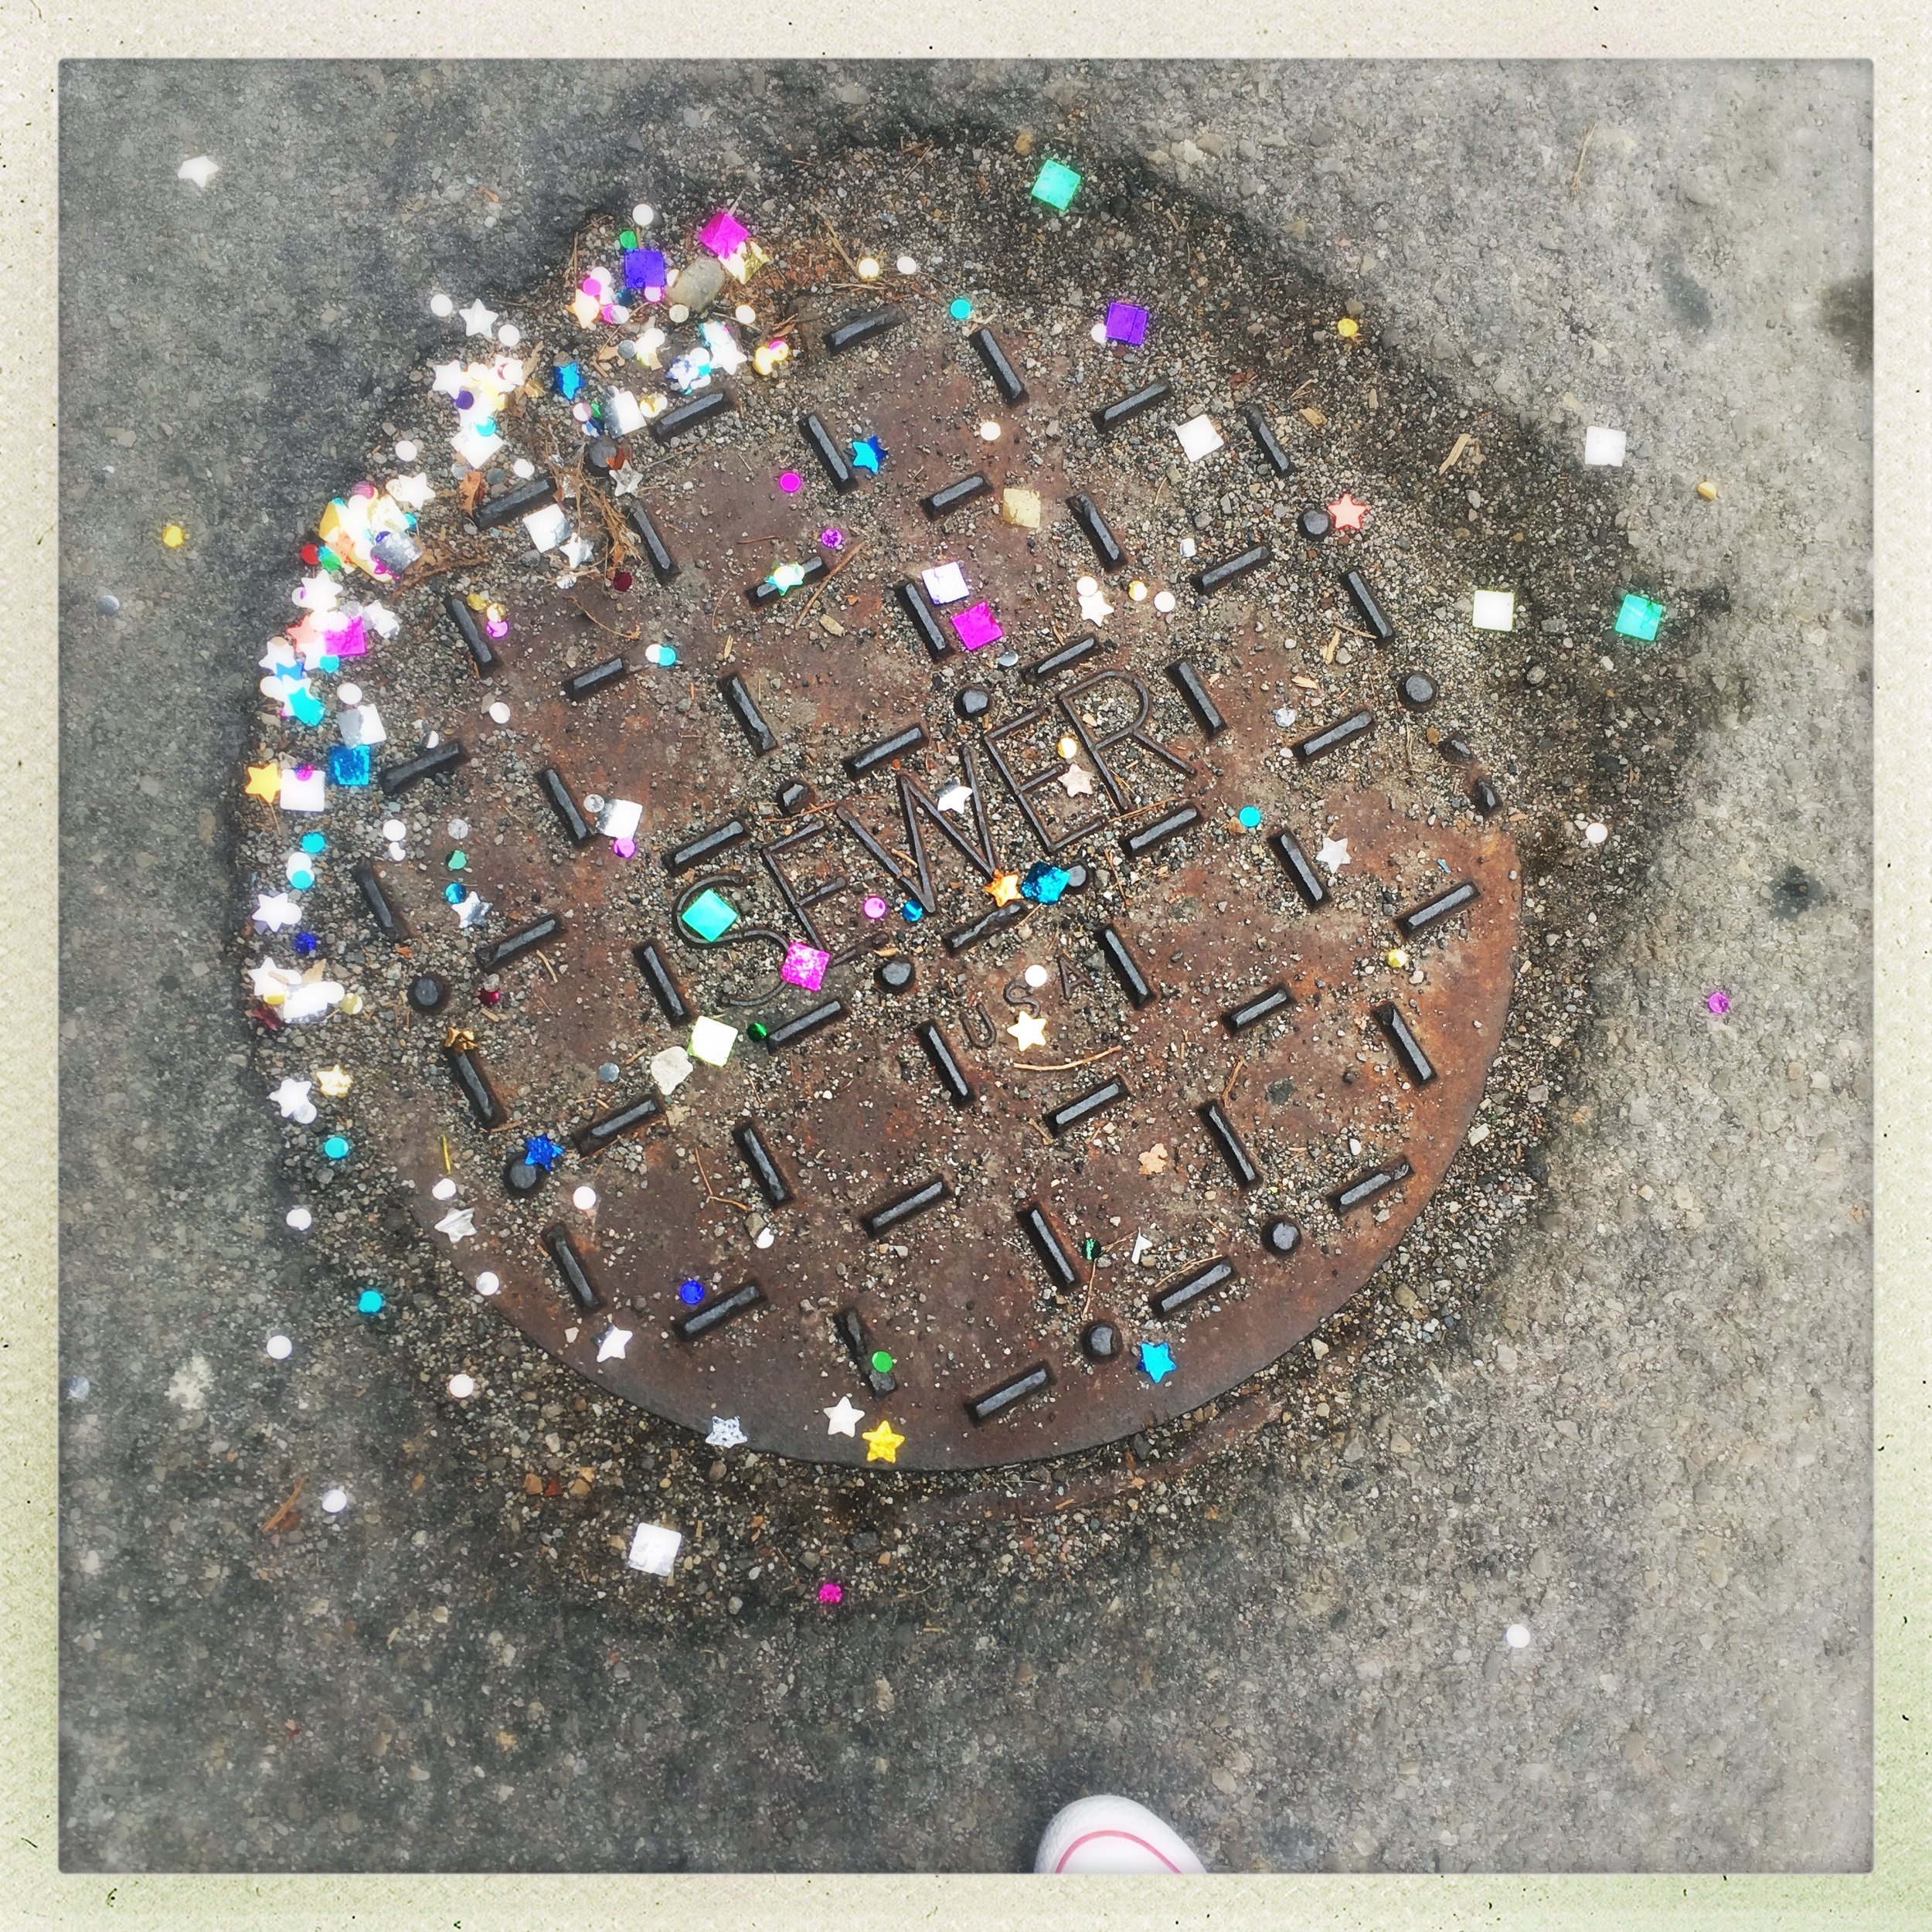 cast in a fit of festivity of some kind. and then very difficult to sweep up. now possibly causing digestive distress to the birds who forage by the dumpster nearby. but very sparkly.